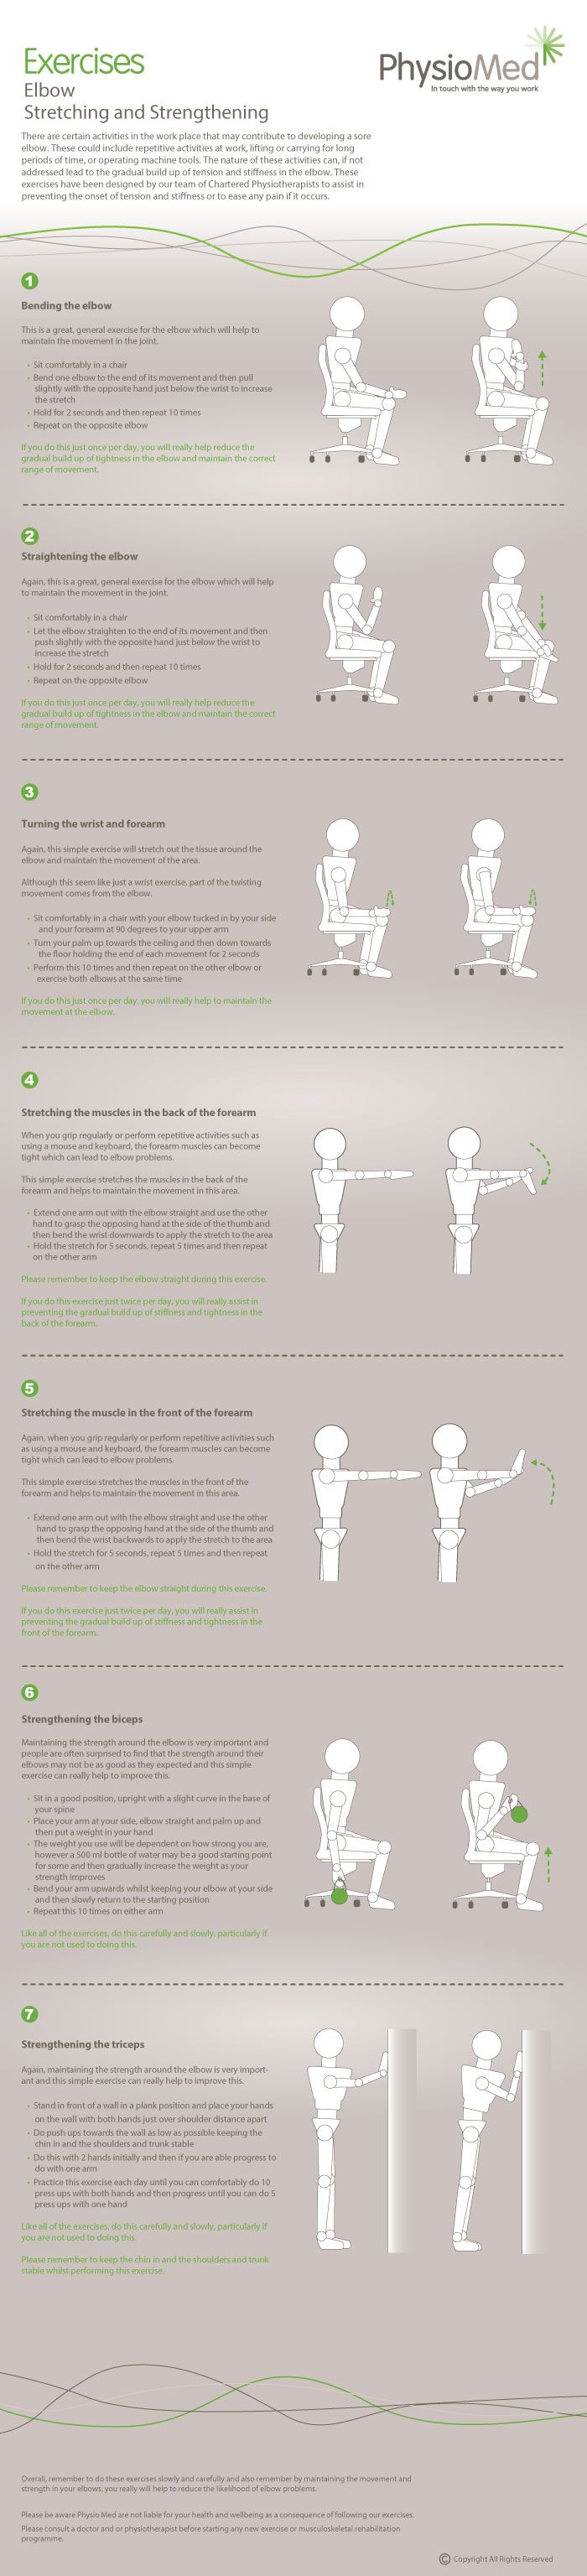 Elbow Stretching and Strengthening Exercises - Occupational Physiotherapy. There are certain activities within the workplace that can contribute to developing a sore elbow. We have developed 7 exercises to help prevent the onset of tension and stiffness in the elbow. For more information please visit http://physiomed.co.uk/exercises/help-give-stiffness-the-elbow